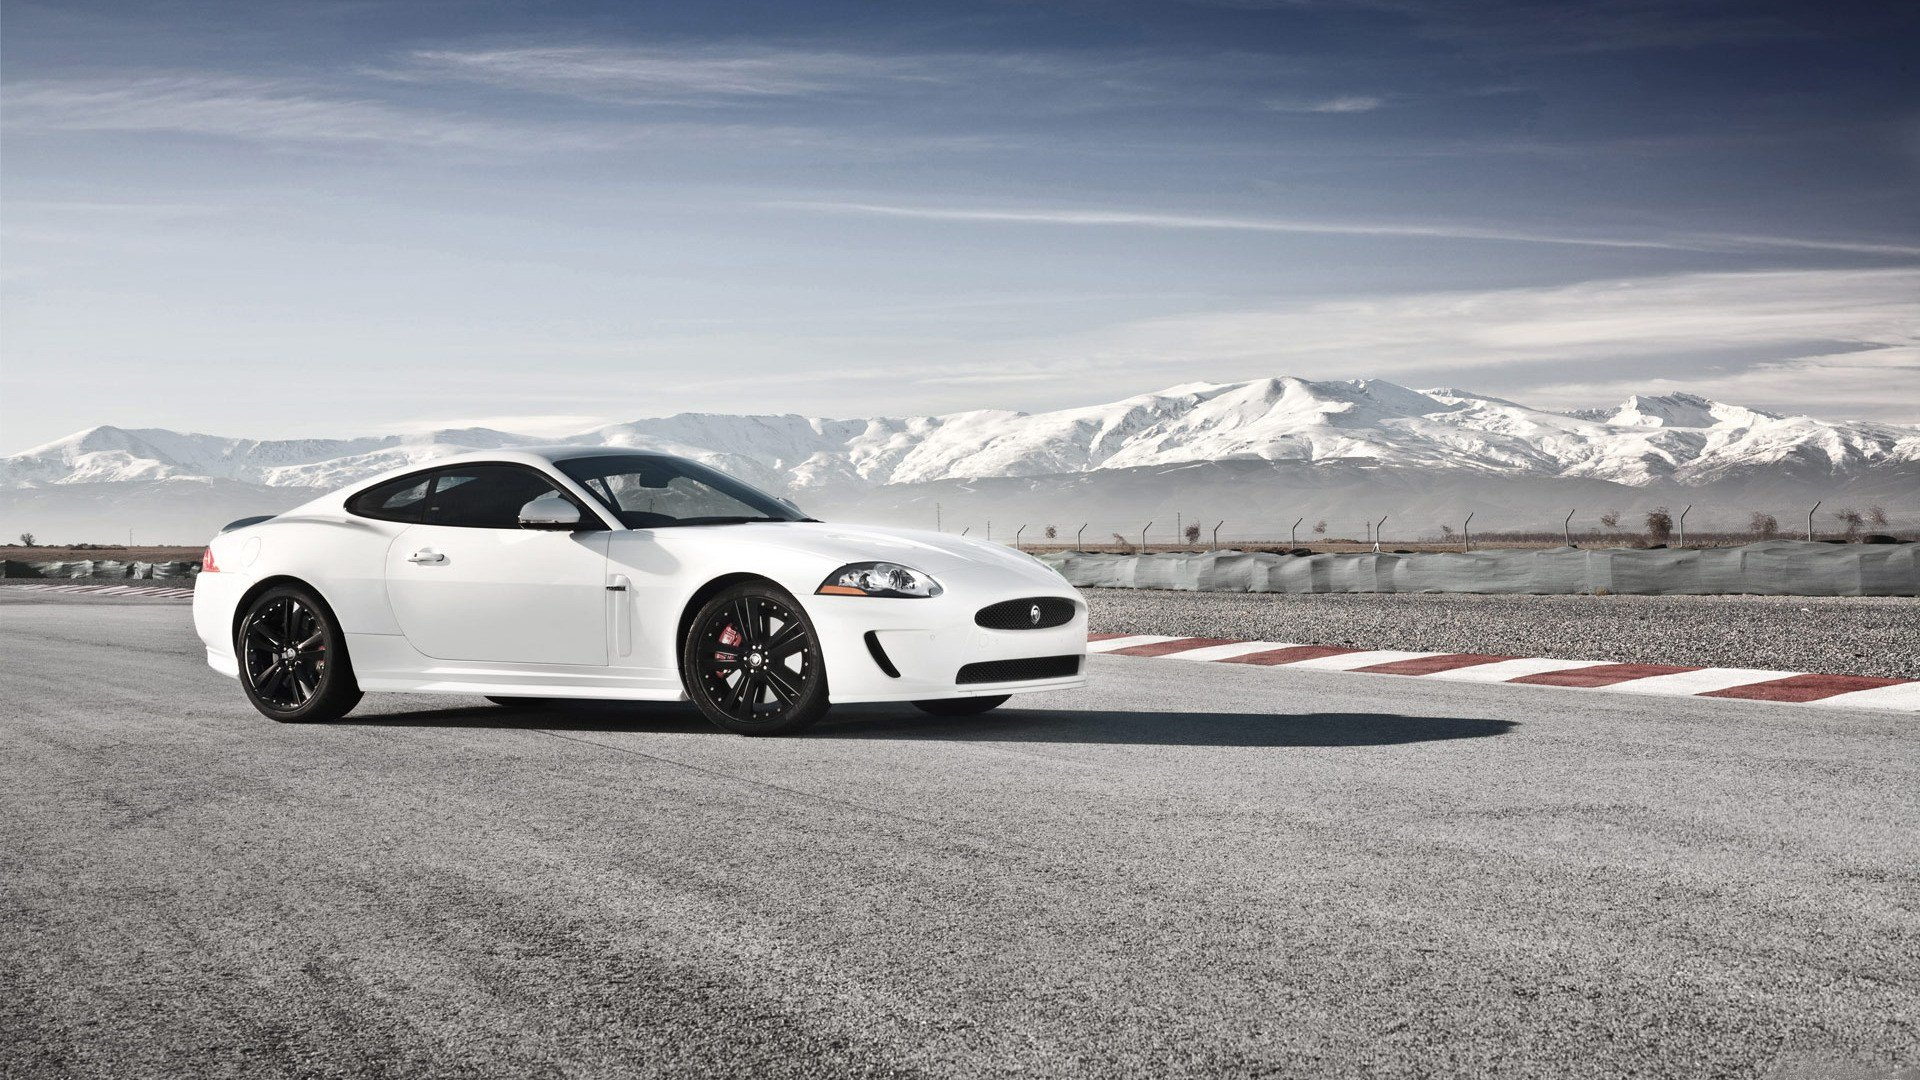 New 15 Stunning Hd Jaguar Wallpapers Hdwallsource Com On This Month